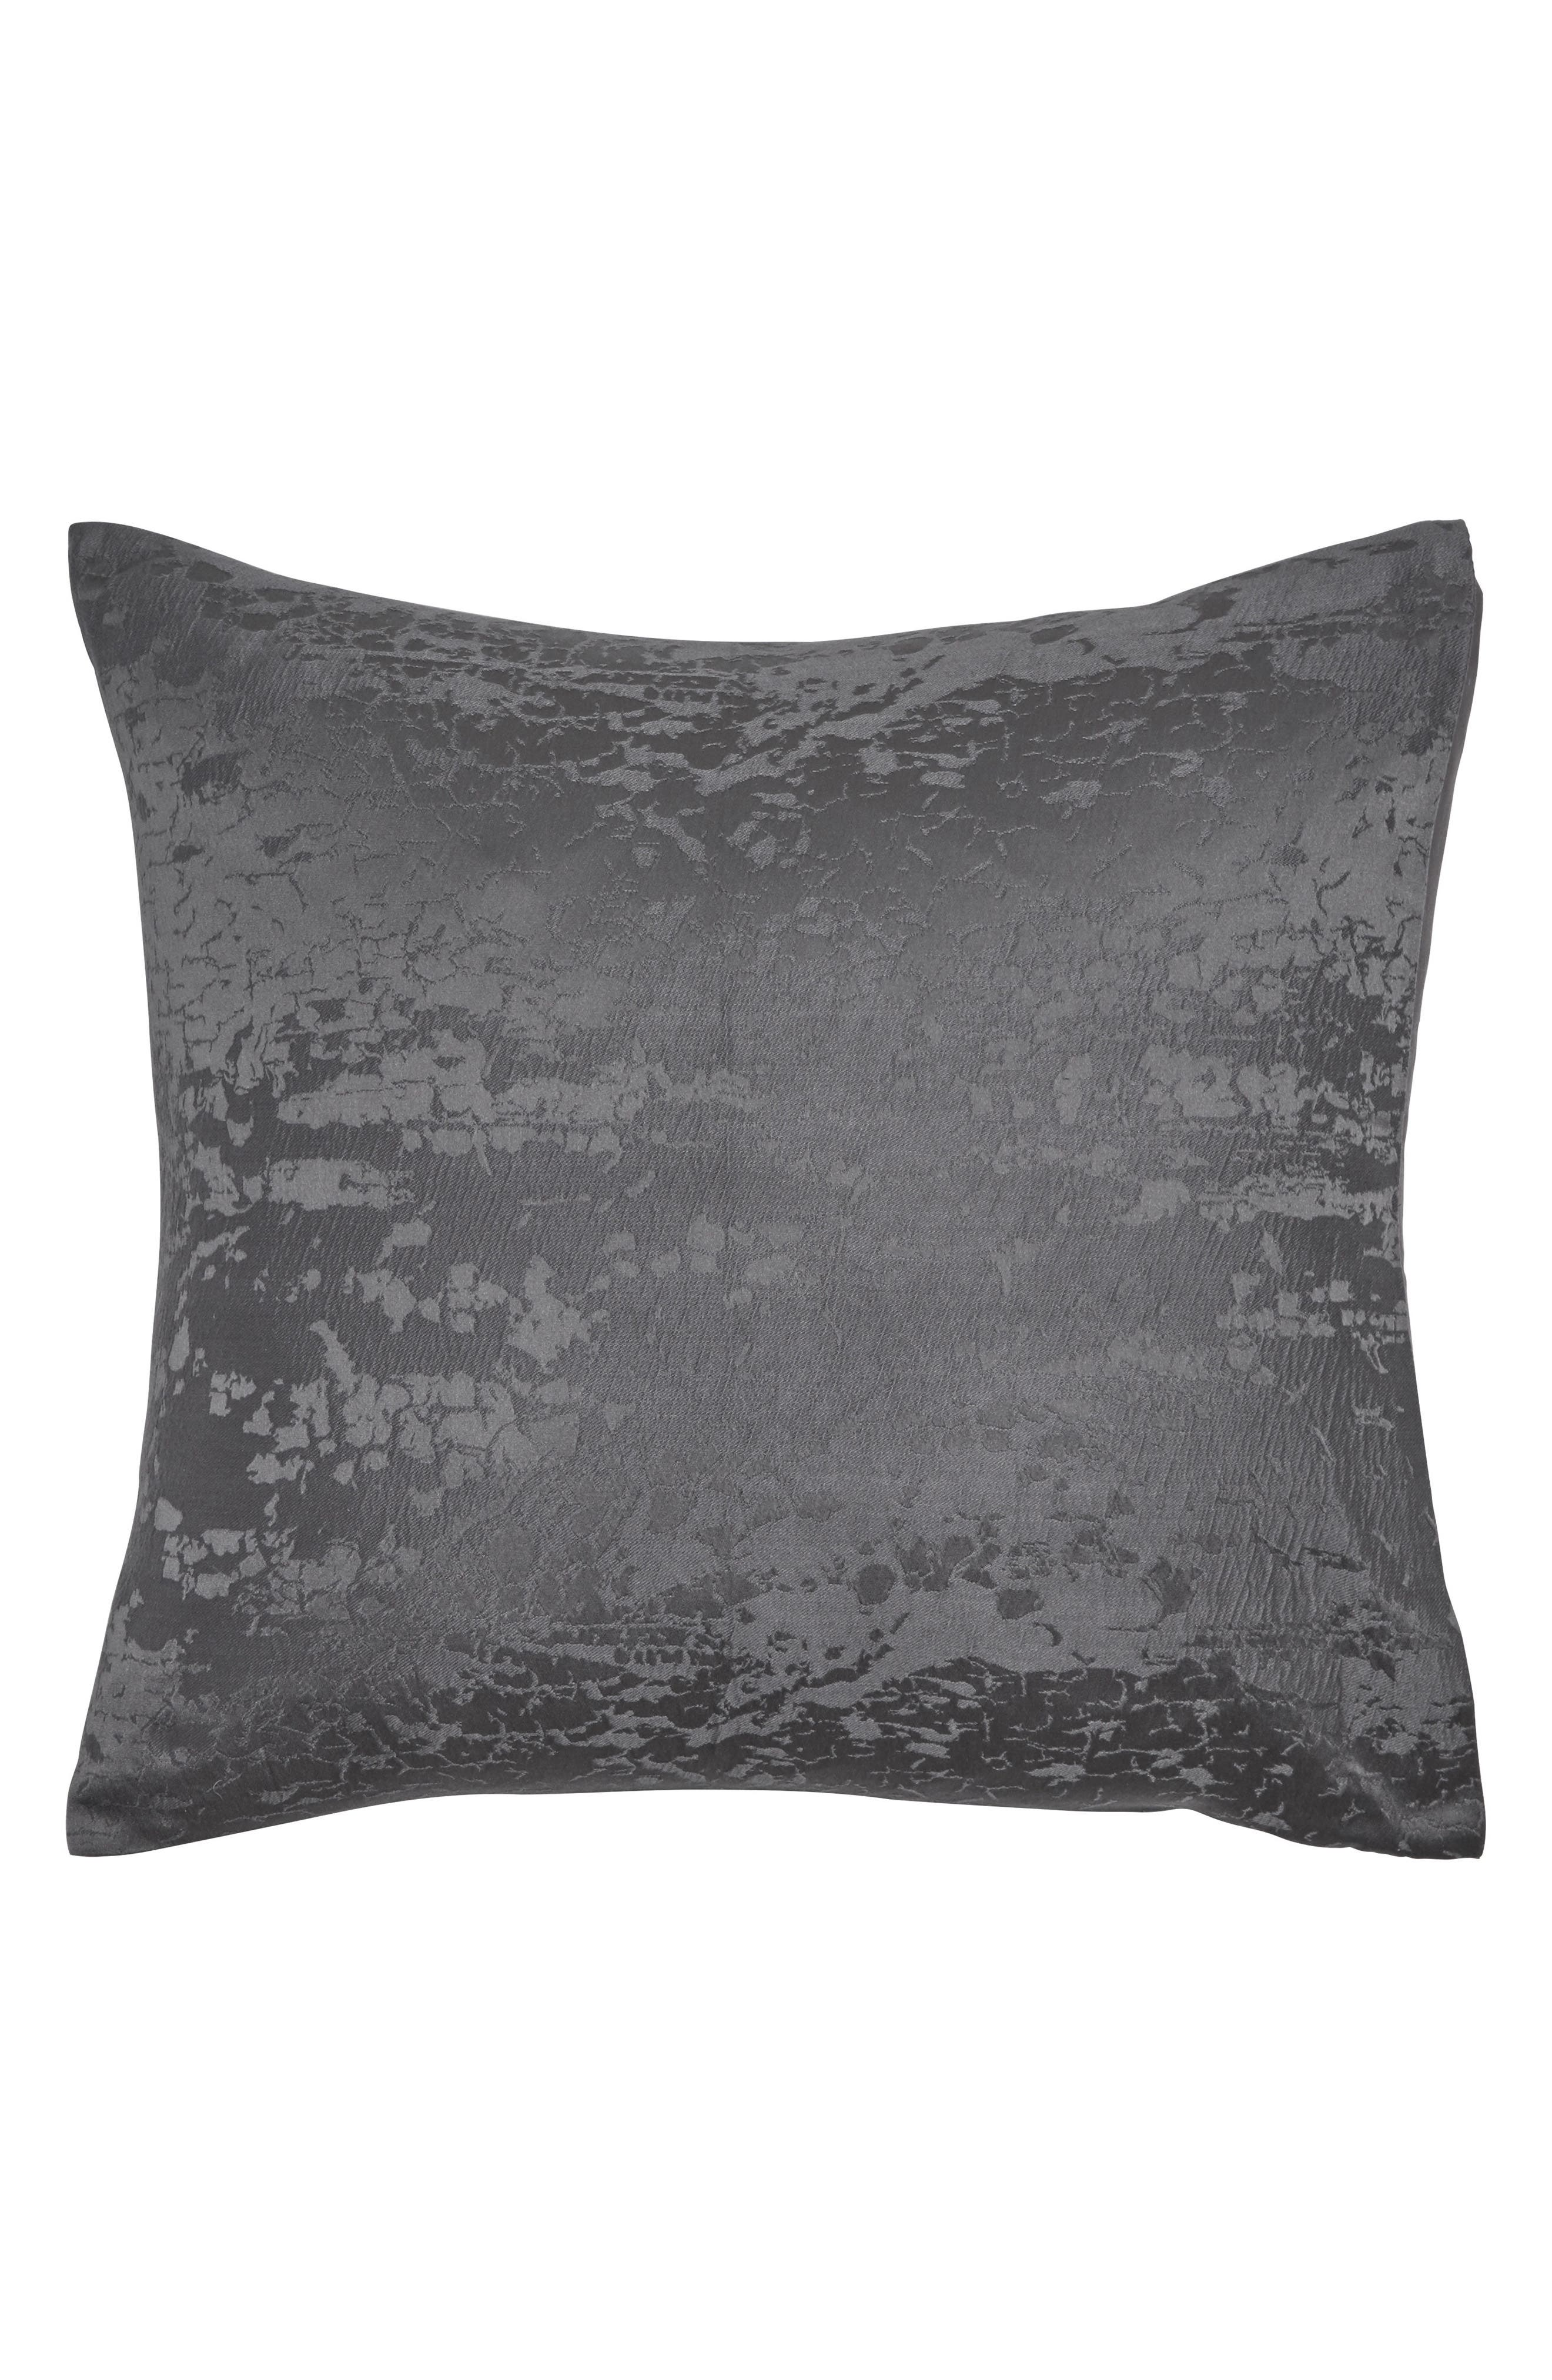 DONNA KARAN NEW YORK Donna Karan Moonscape Euro Sham, Main, color, CHARCOAL